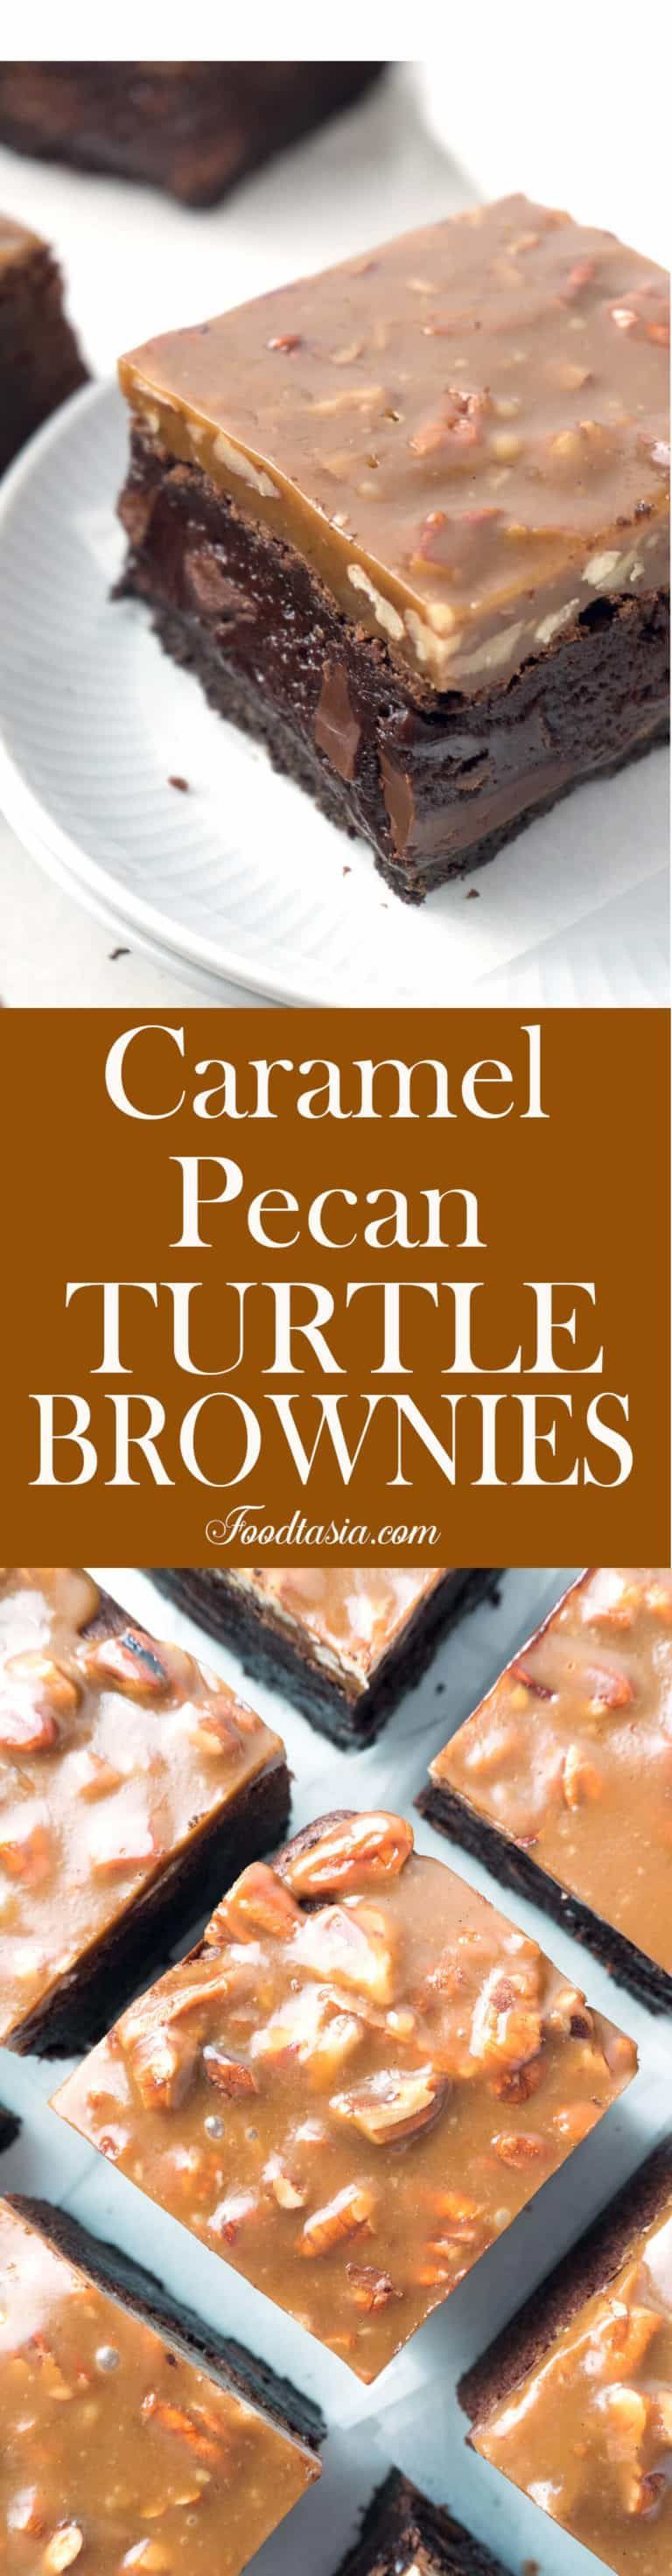 Fudgy Caramel Pecan Turtle Brownies #turtlebrownies Fudgy Caramel Pecan Turtle Brownies | Foodtasia #turtlebrownies Fudgy Caramel Pecan Turtle Brownies #turtlebrownies Fudgy Caramel Pecan Turtle Brownies | Foodtasia #turtlebrownies